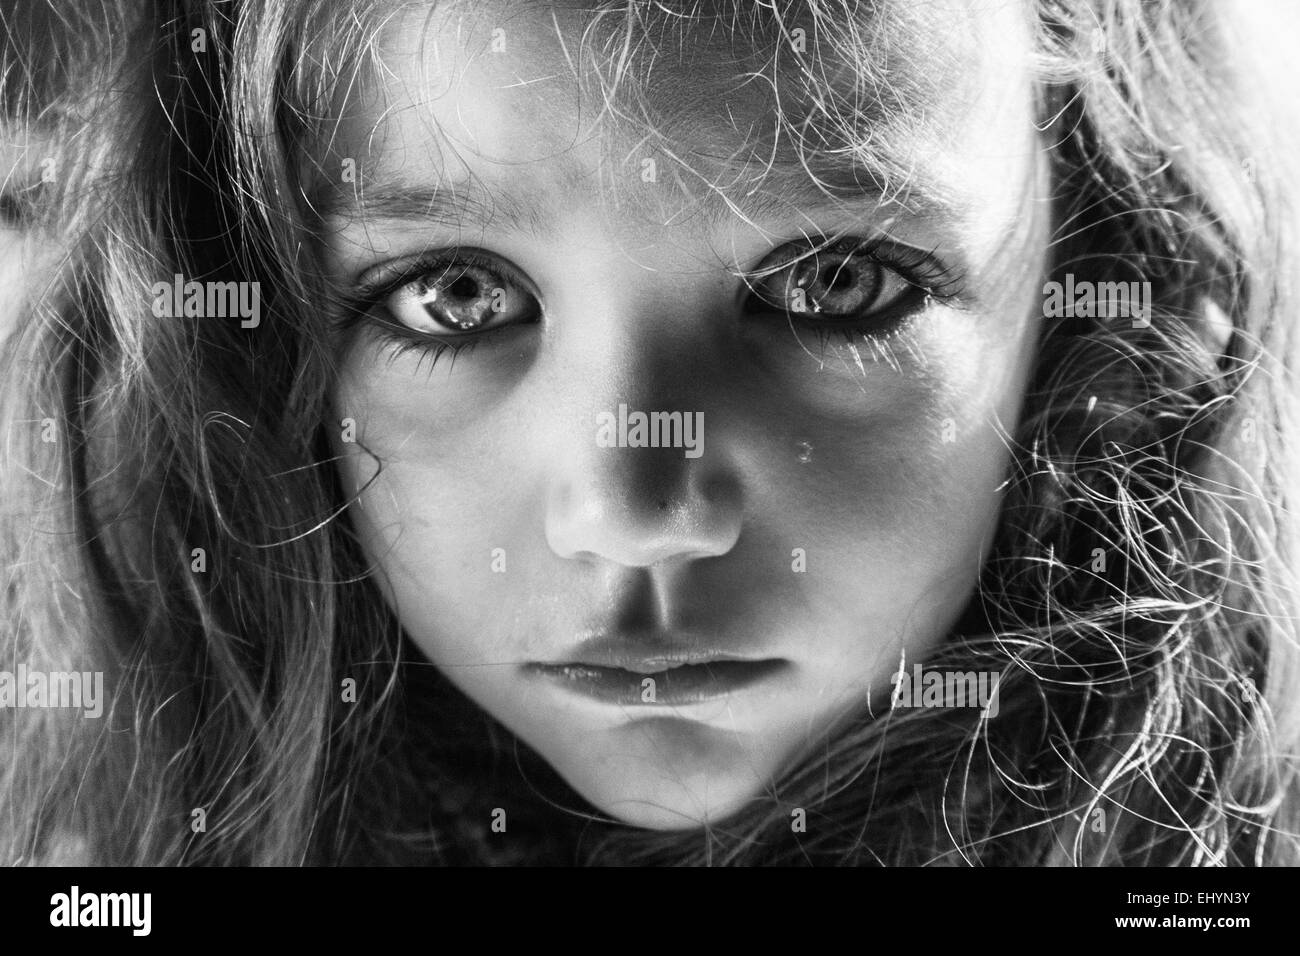 Girl with a tear running down her face Stock Photo